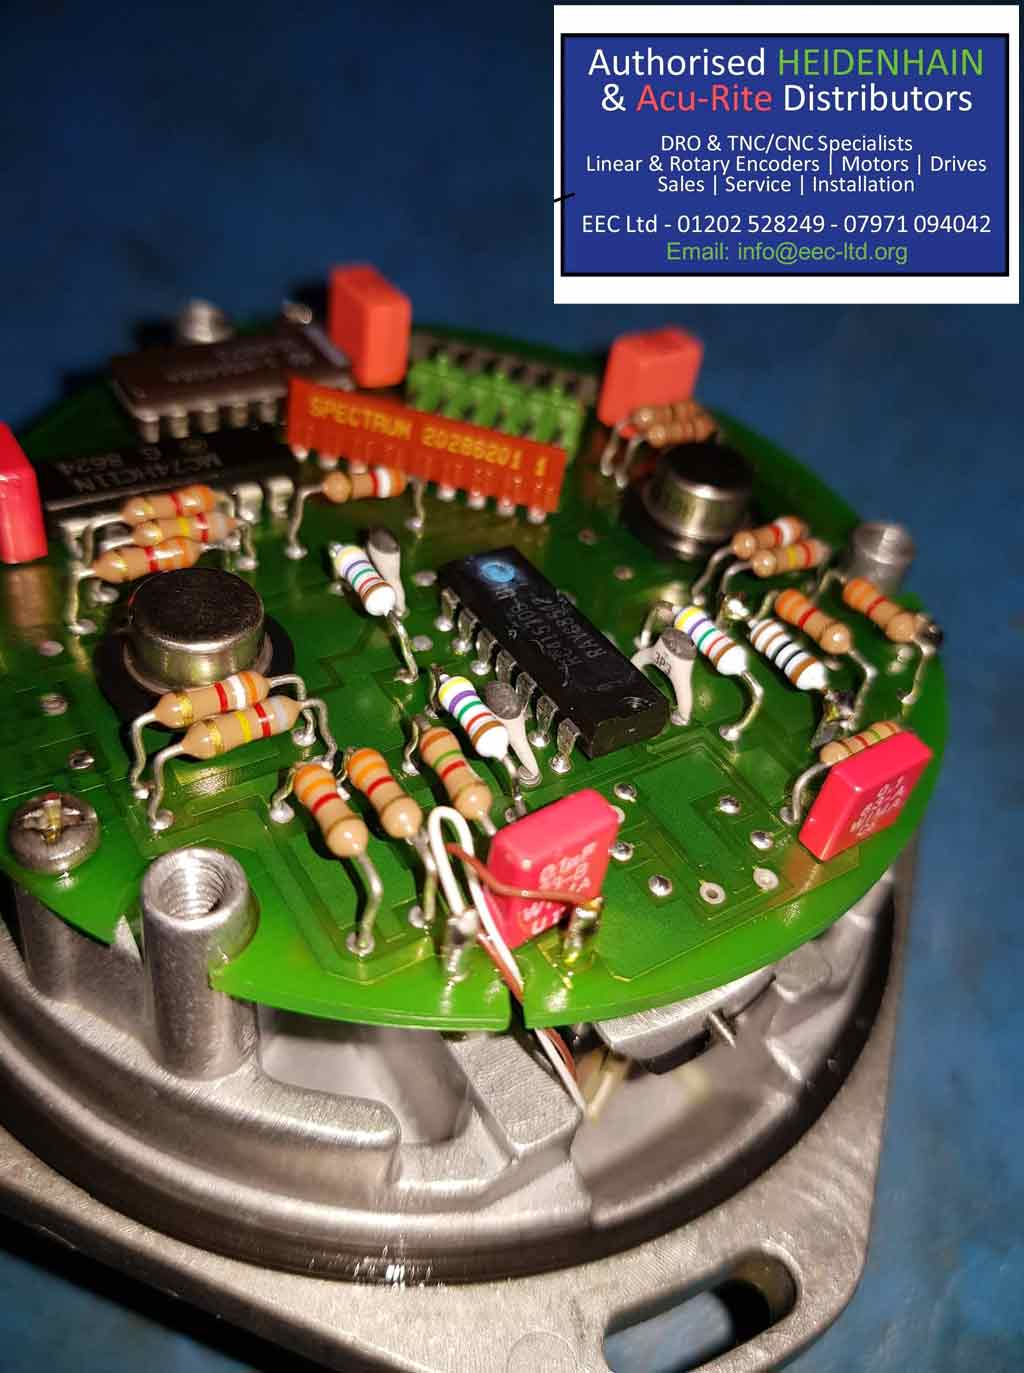 rotary encoder re calibrate